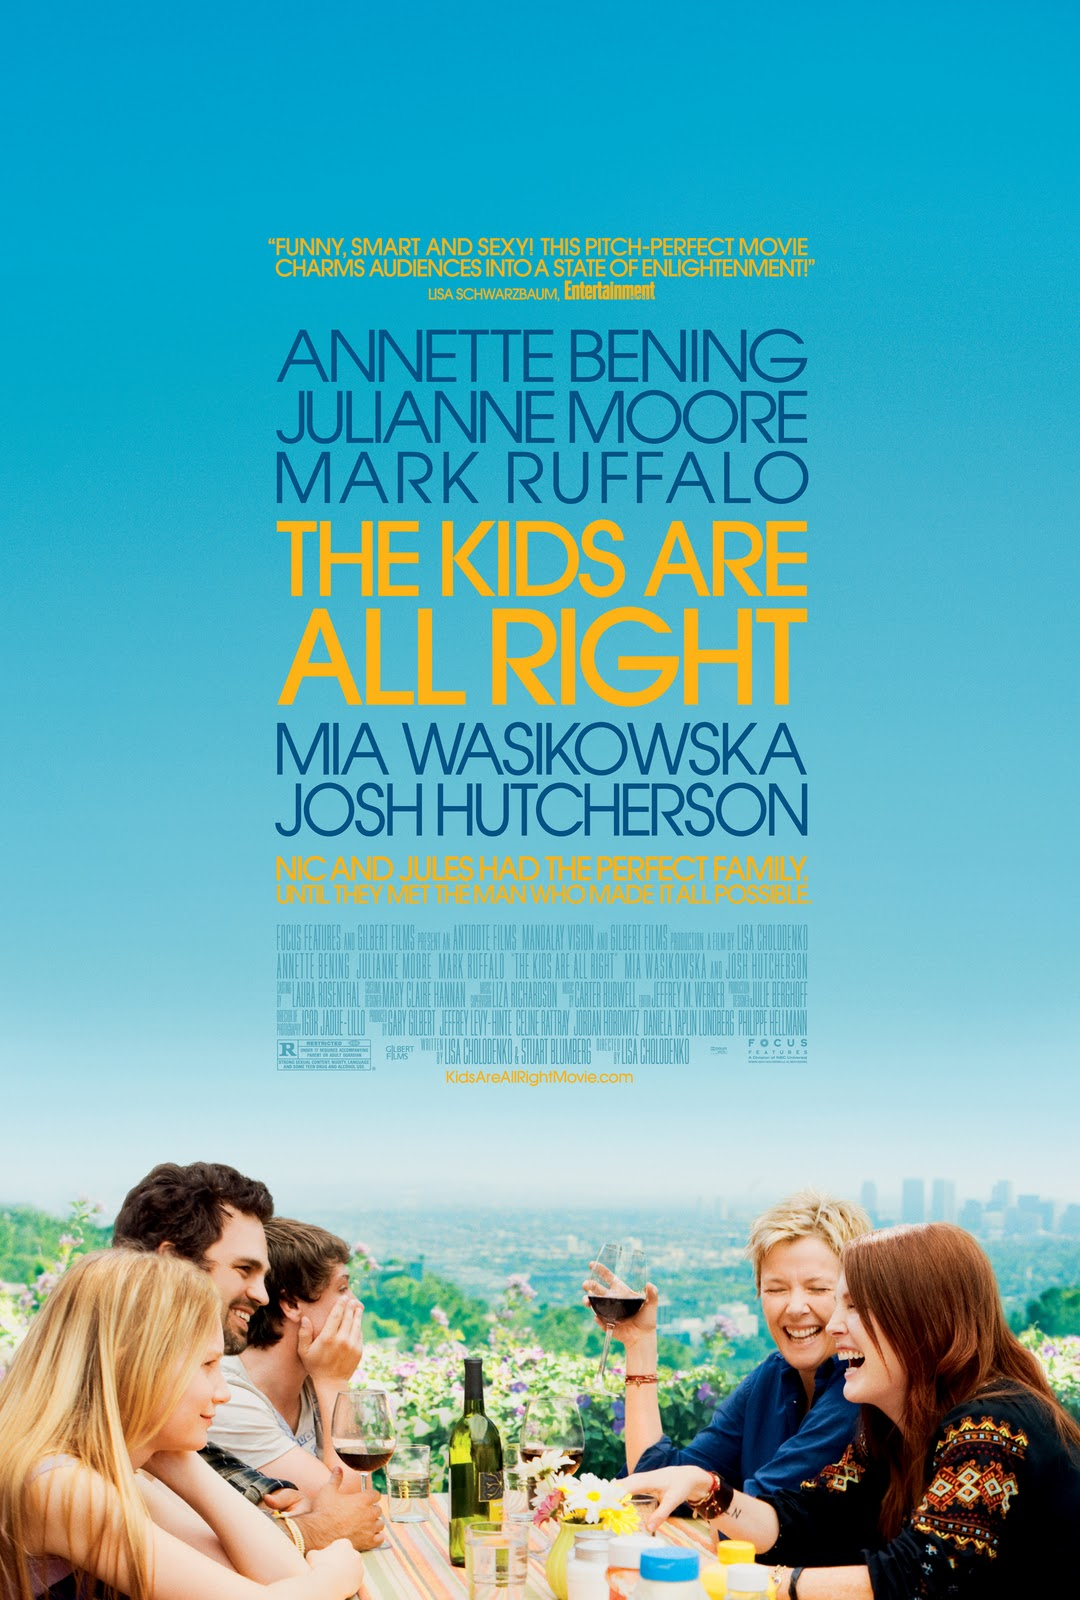 http://4.bp.blogspot.com/_ncwN_gkjyTg/TTUBGXKRDaI/AAAAAAAAAGI/Ww9BxS0i-hc/s1600/The-Kids-Are-All-Right-movie-poster.jpg